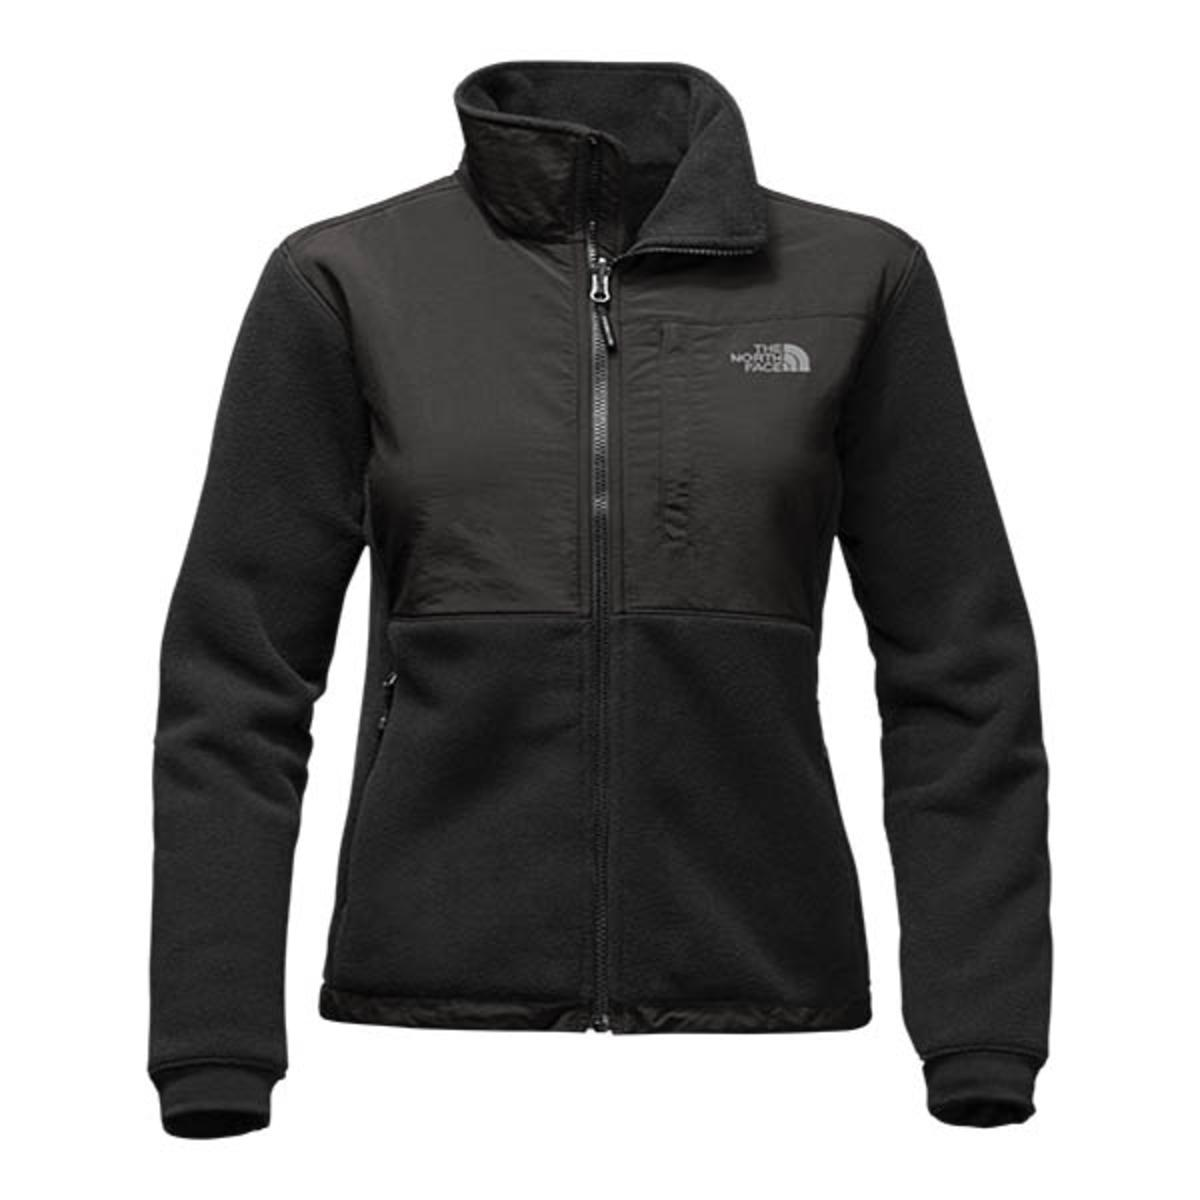 497e022ab59f The North Face Women s Denali 2 Jacket - Black - The Warming Store